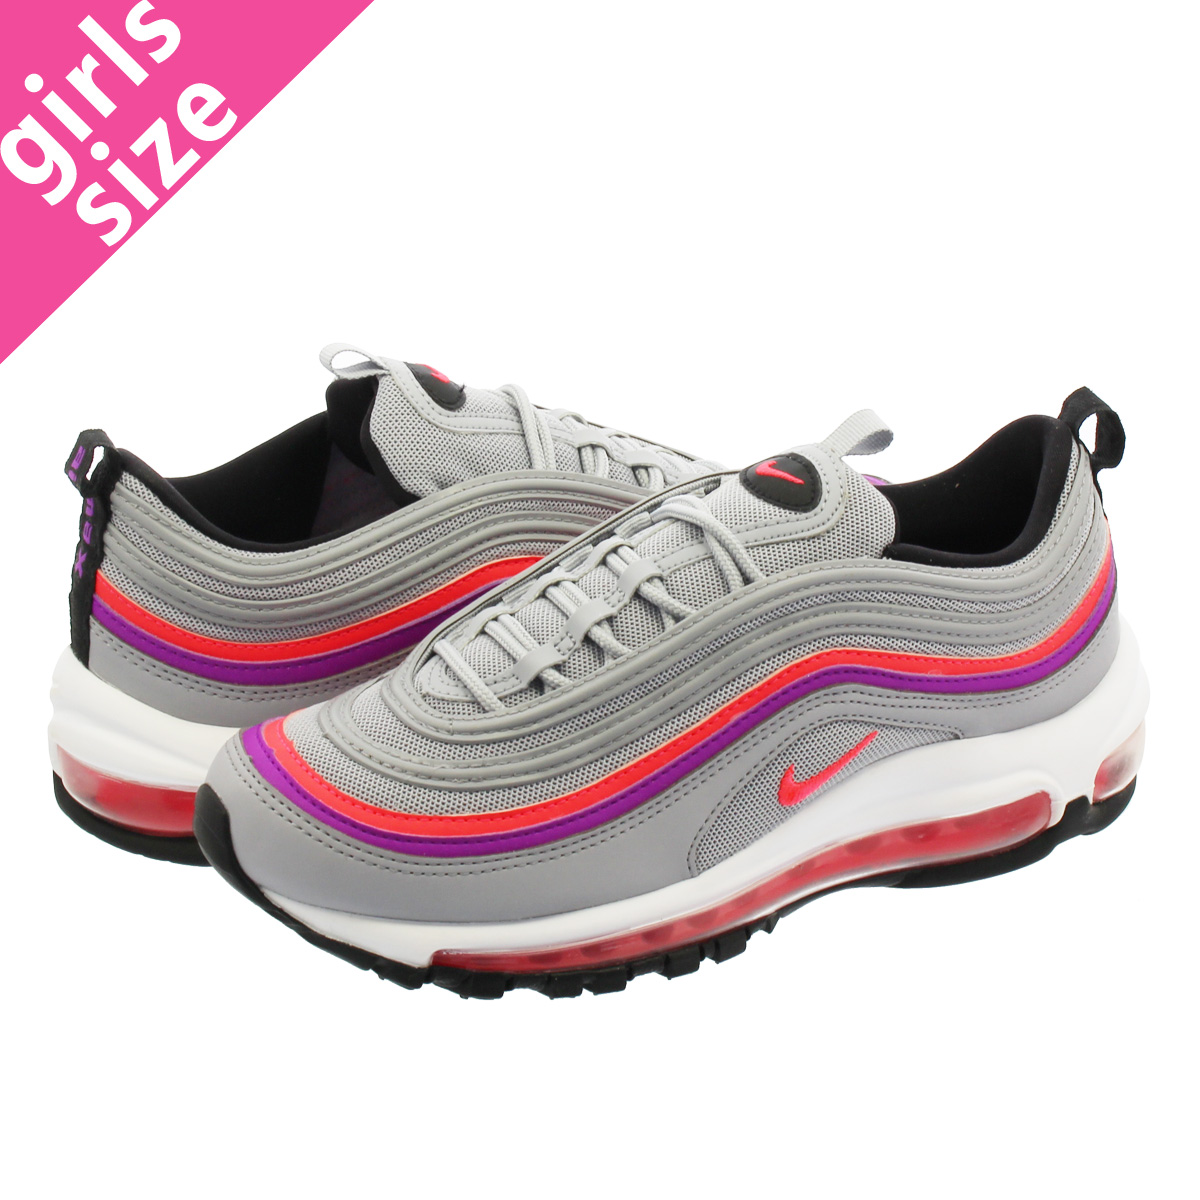 23e6a2faa3 Categories. « All Categories · Shoes · Women's Shoes · Sneakers · NIKE WMNS  AIR MAX 97 Nike women Air Max 97 WOLF GREY/VIVID PURPLE/